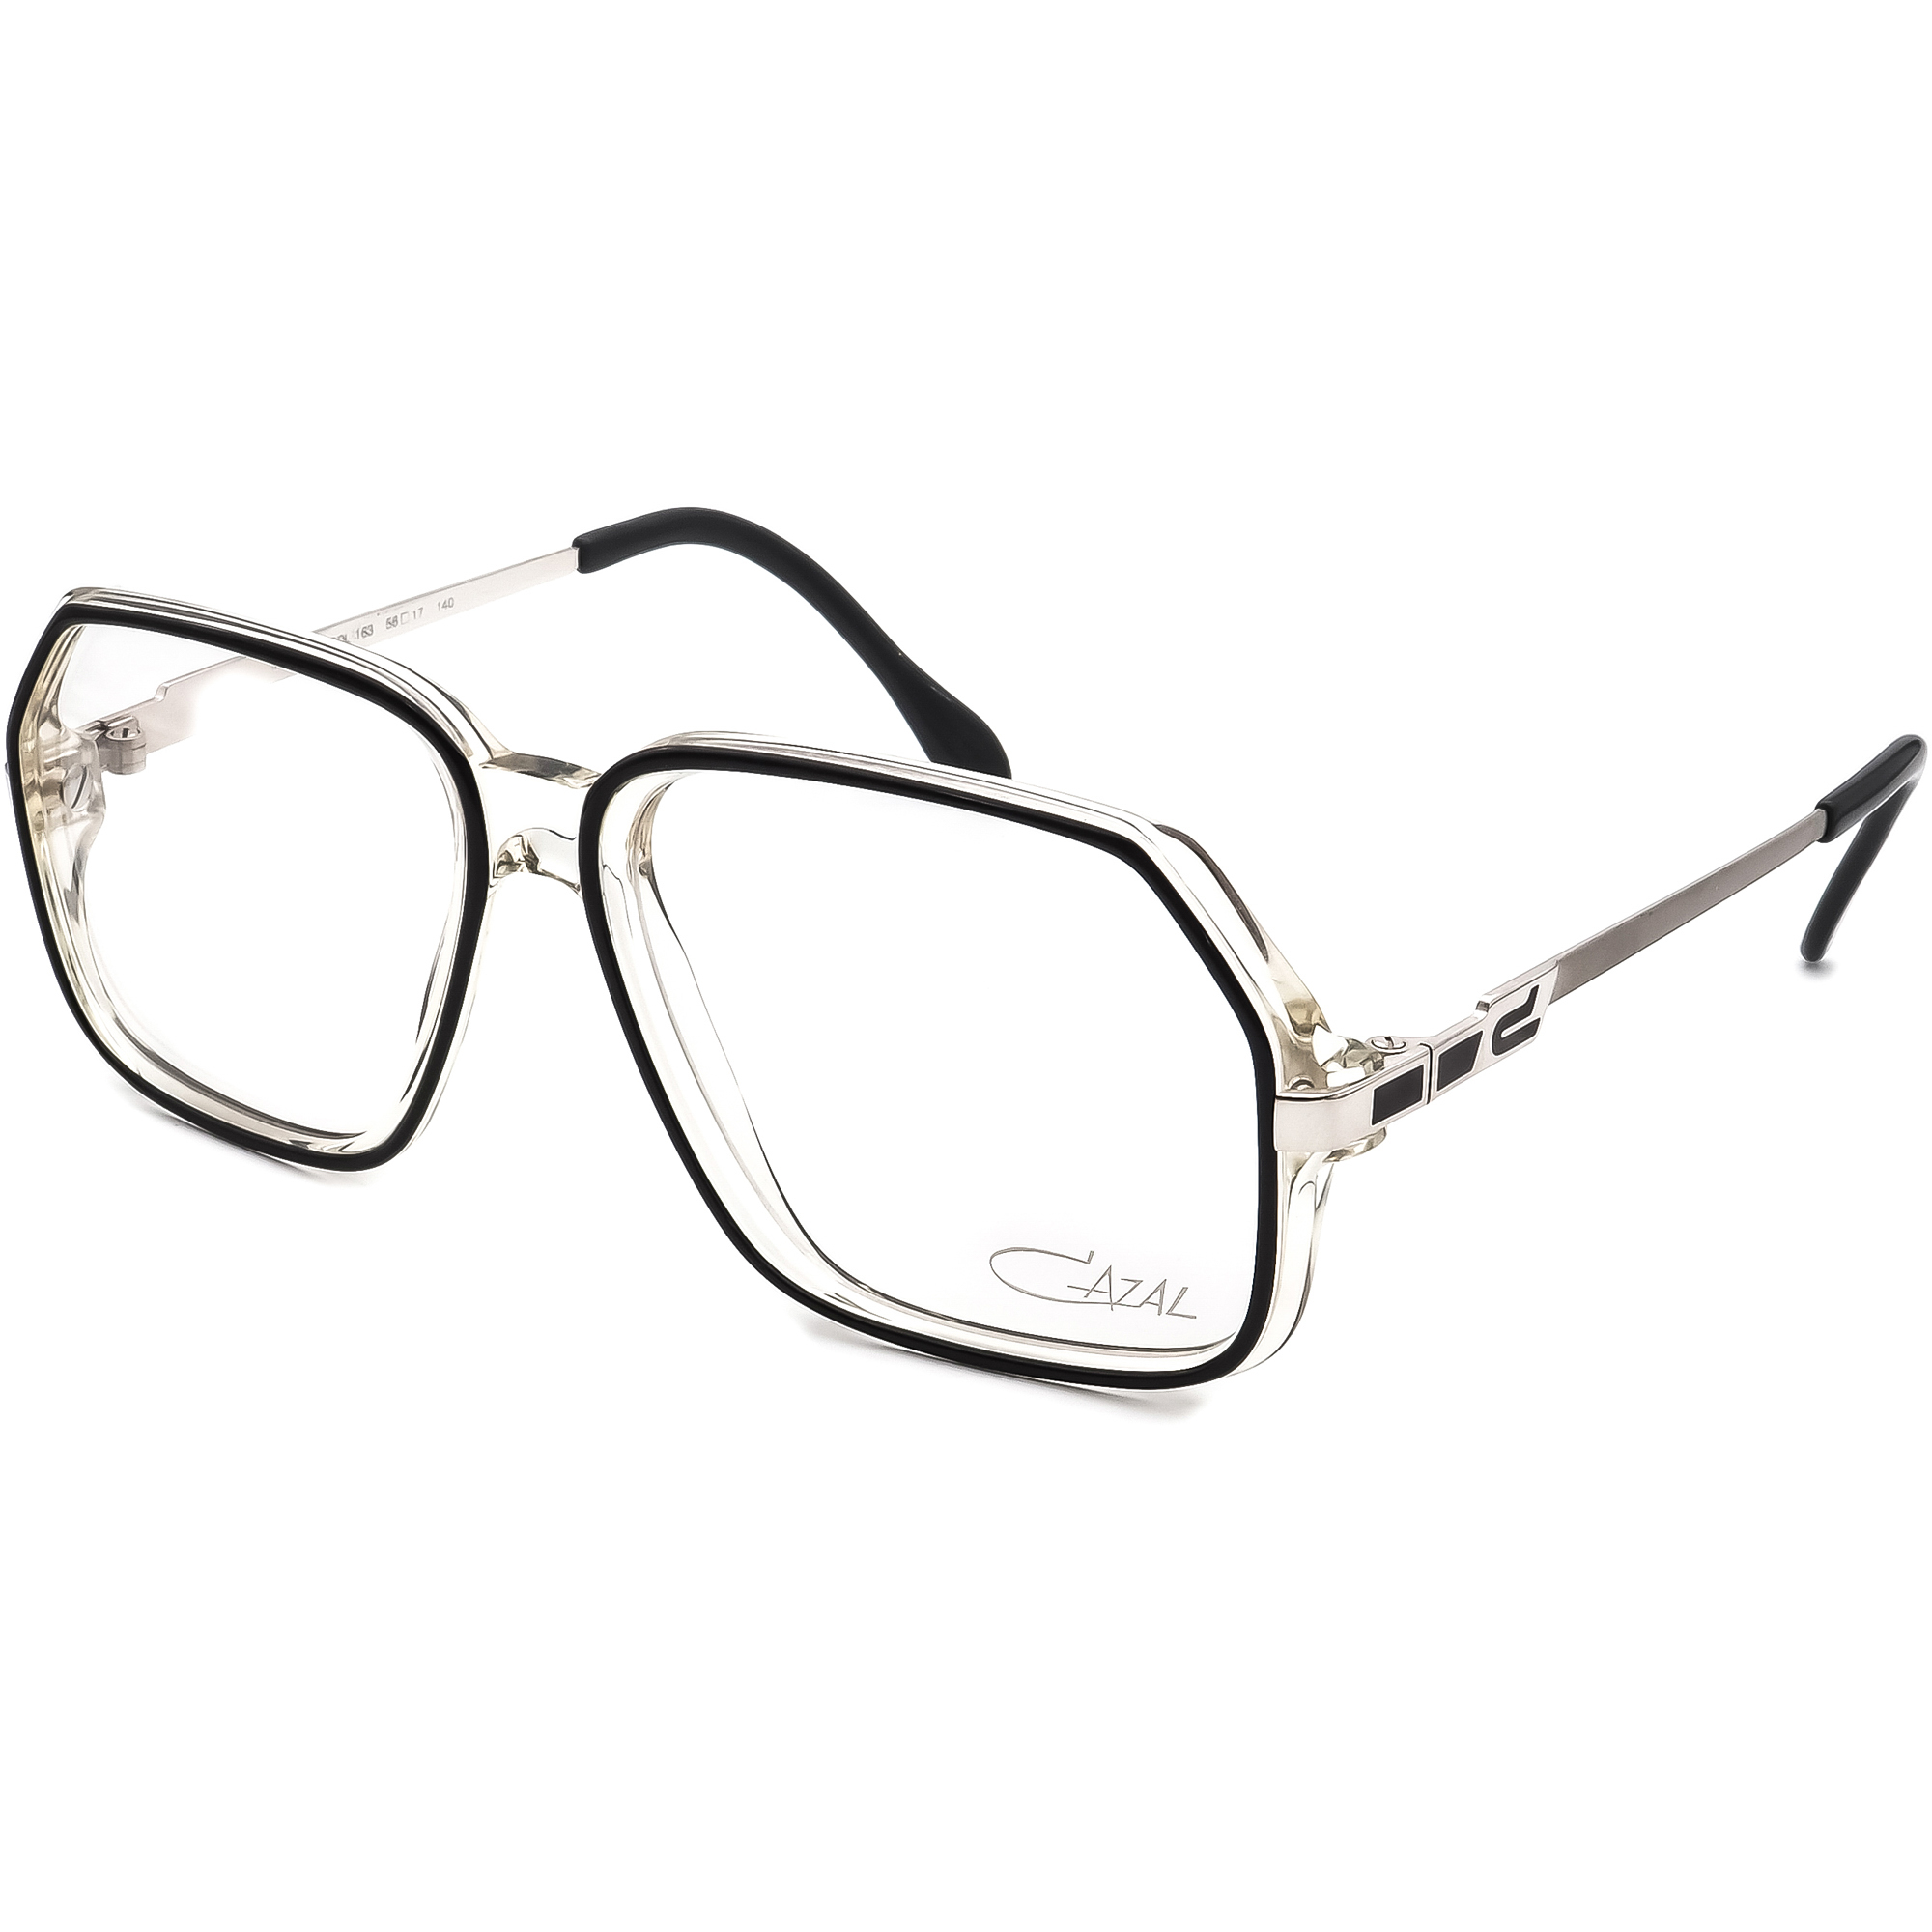 Cazal Eyeglasses MOD.625 COL.163 Black & Clear/Silver Frame Germany 56[]17 140